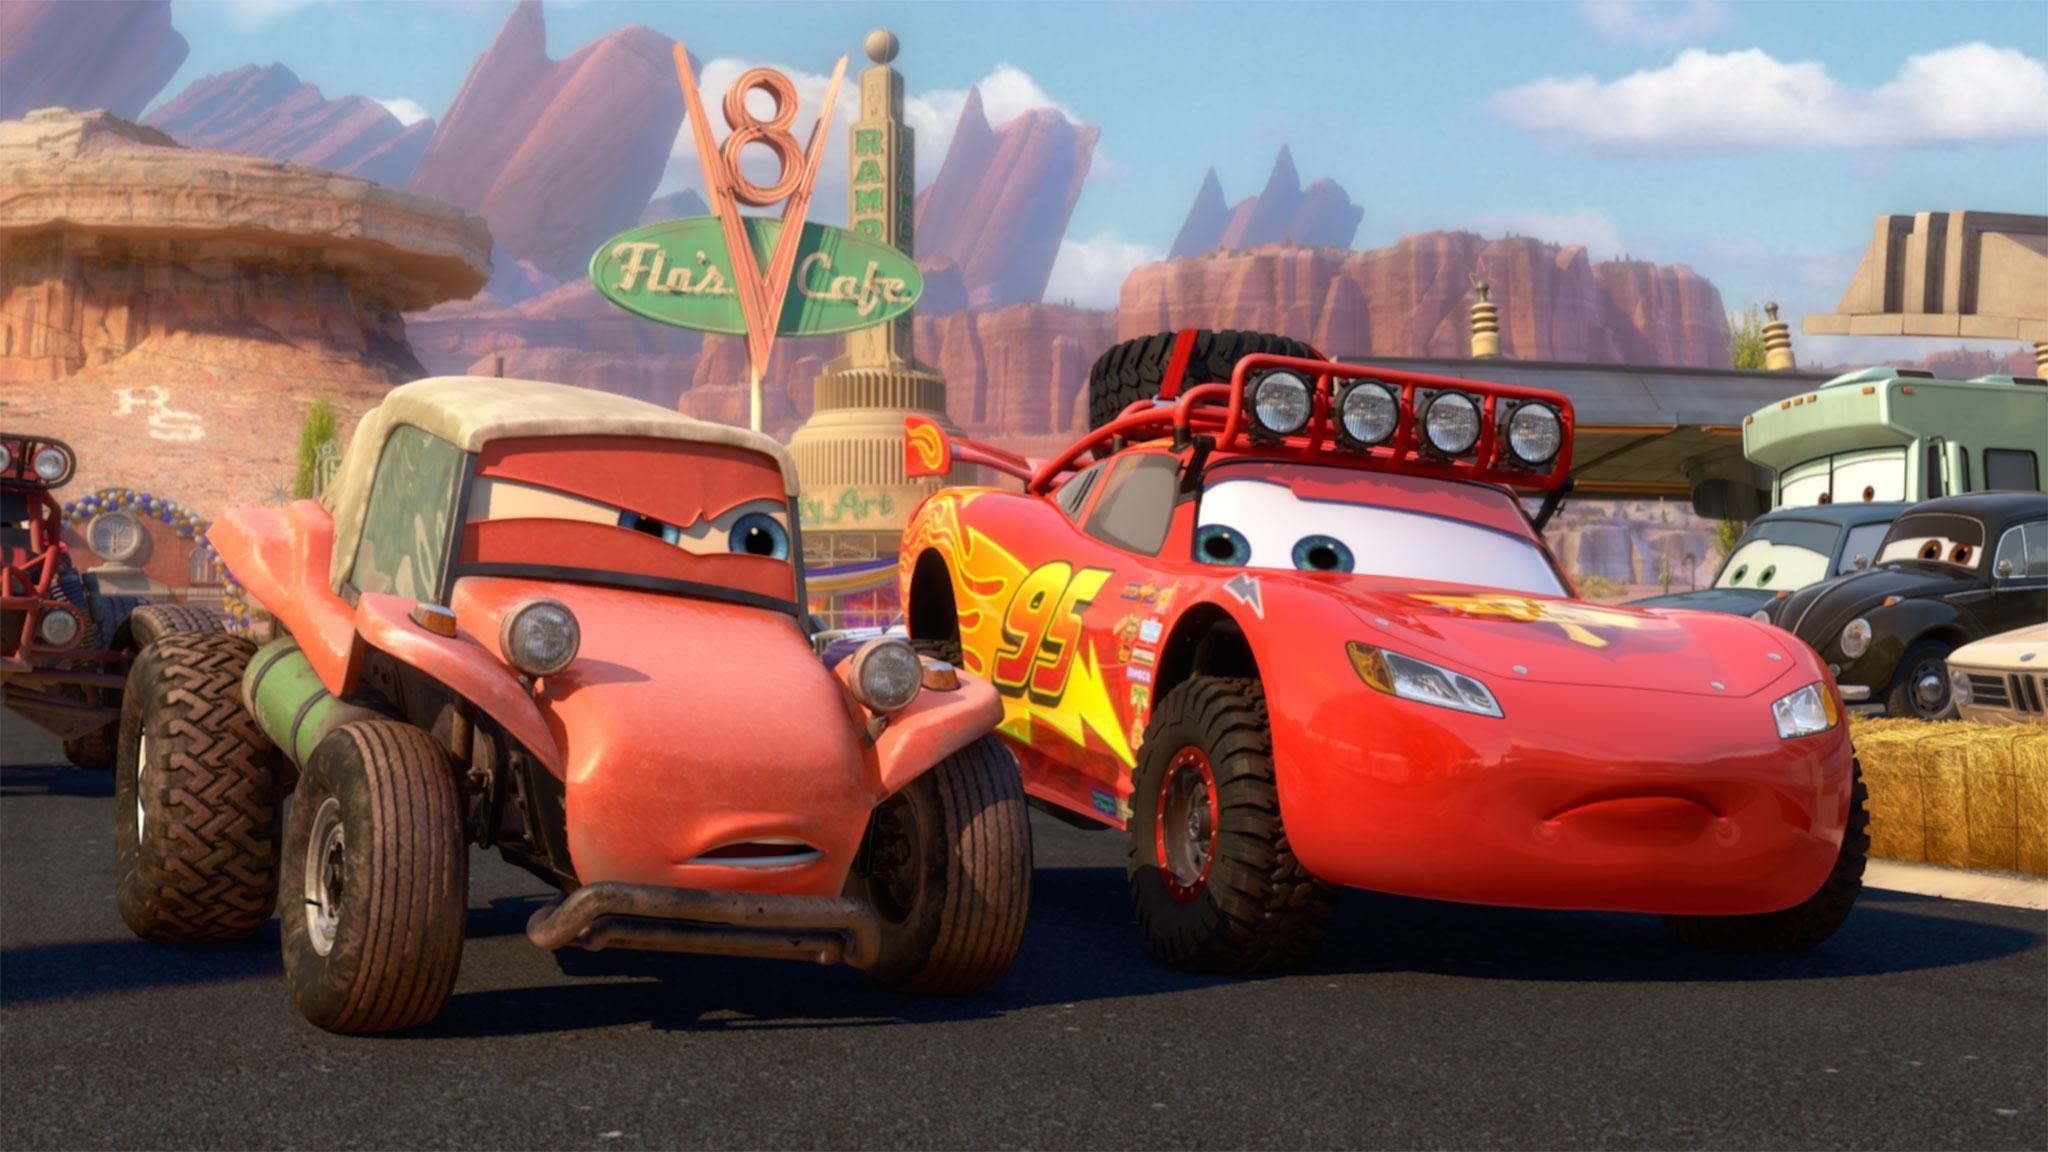 disneypixars cars roar back in a new short video